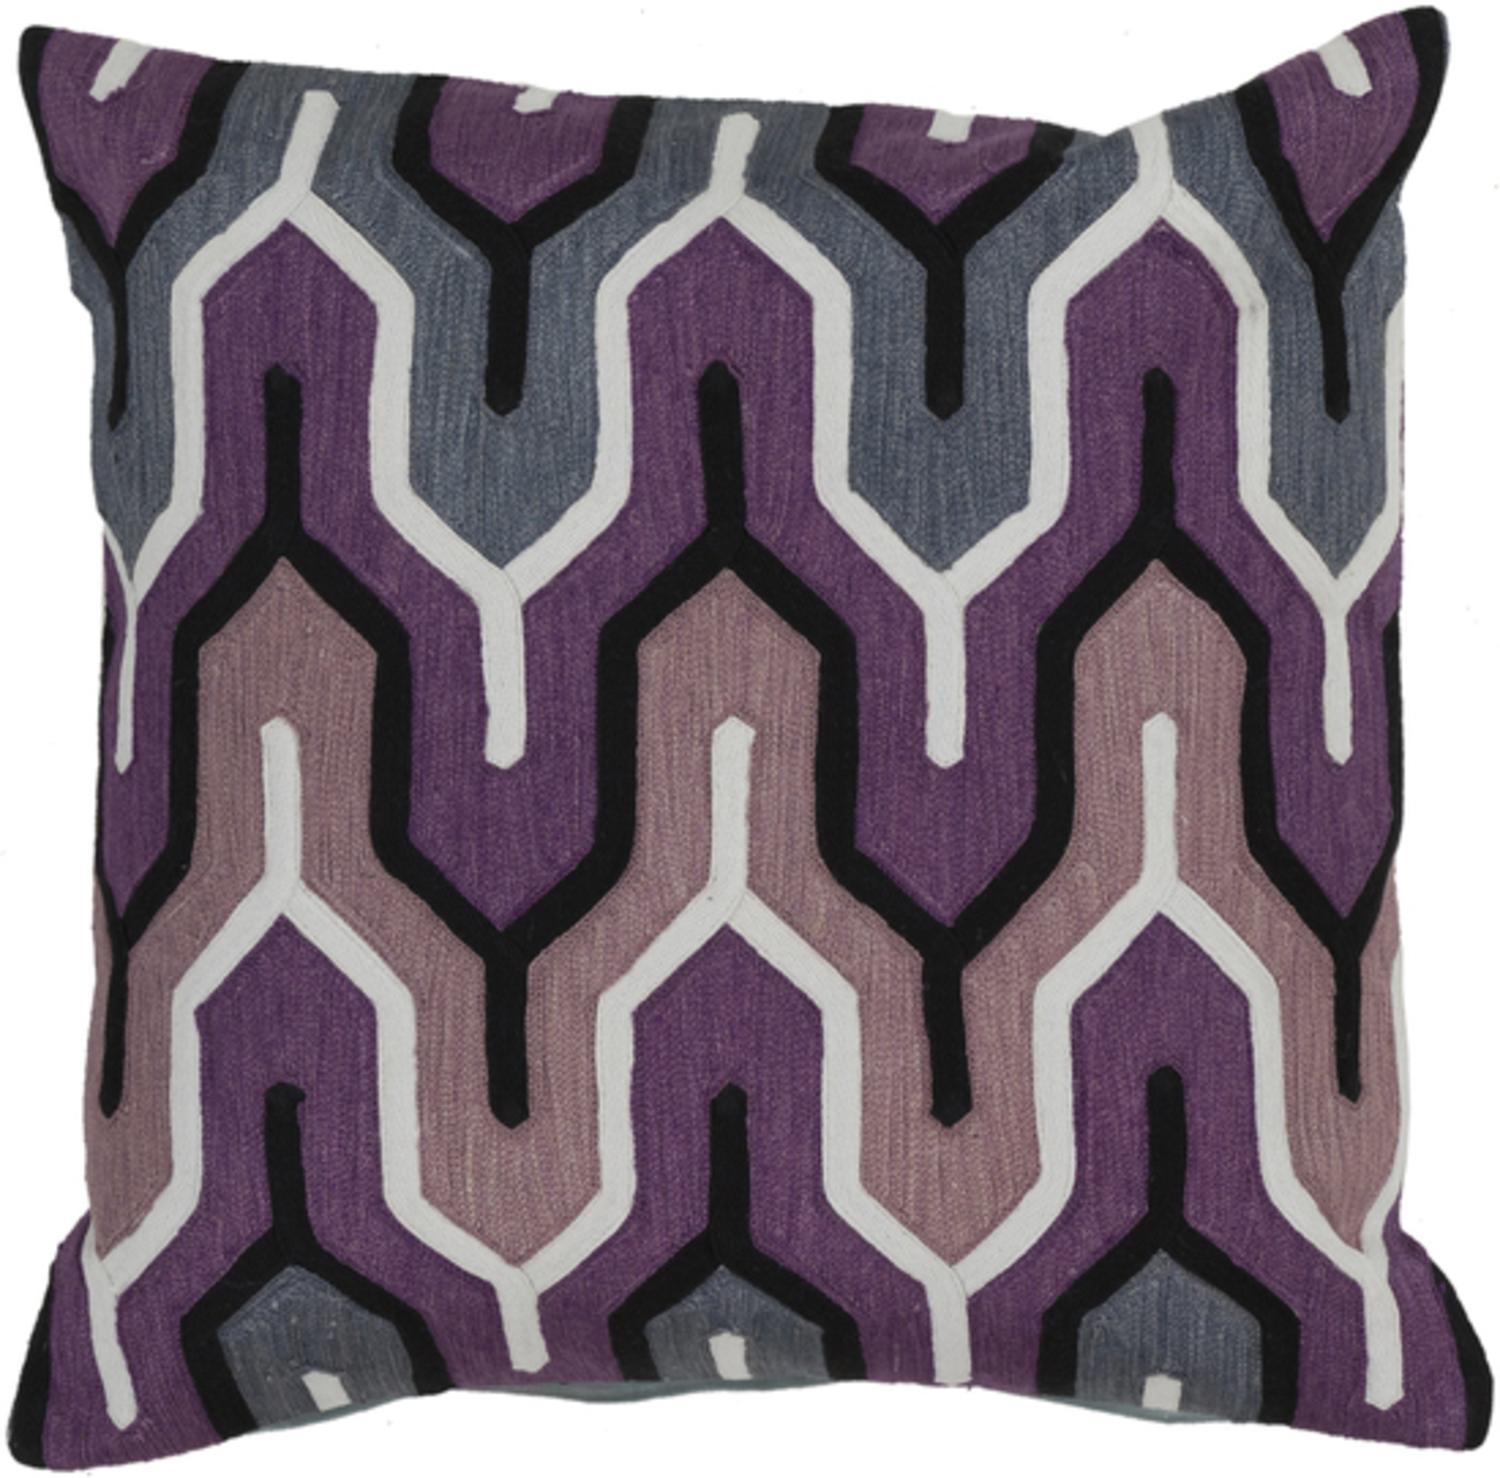 "22"" Belvedere Stripes Purple, Gray and Black Decorative Square Throw Pillow Down Filler by Diva At Home"